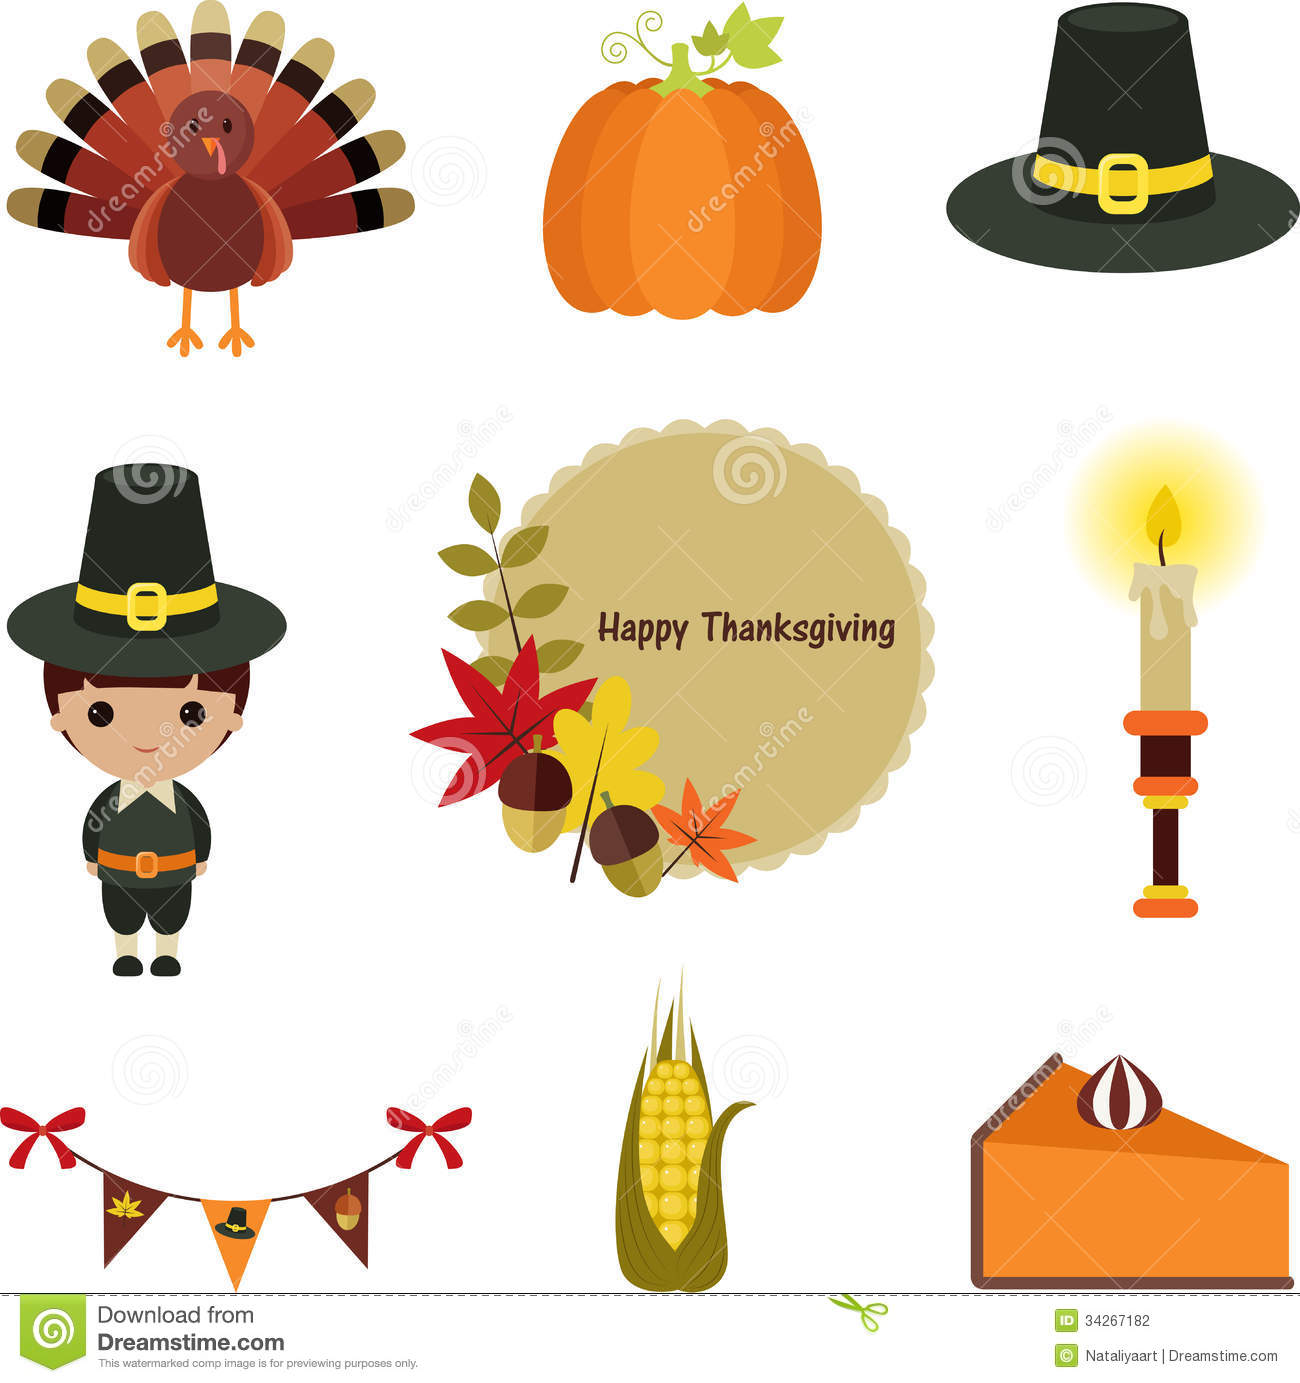 Thanksgiving clip-art set. Stock Photogr-Thanksgiving clip-art set. Stock Photography-17